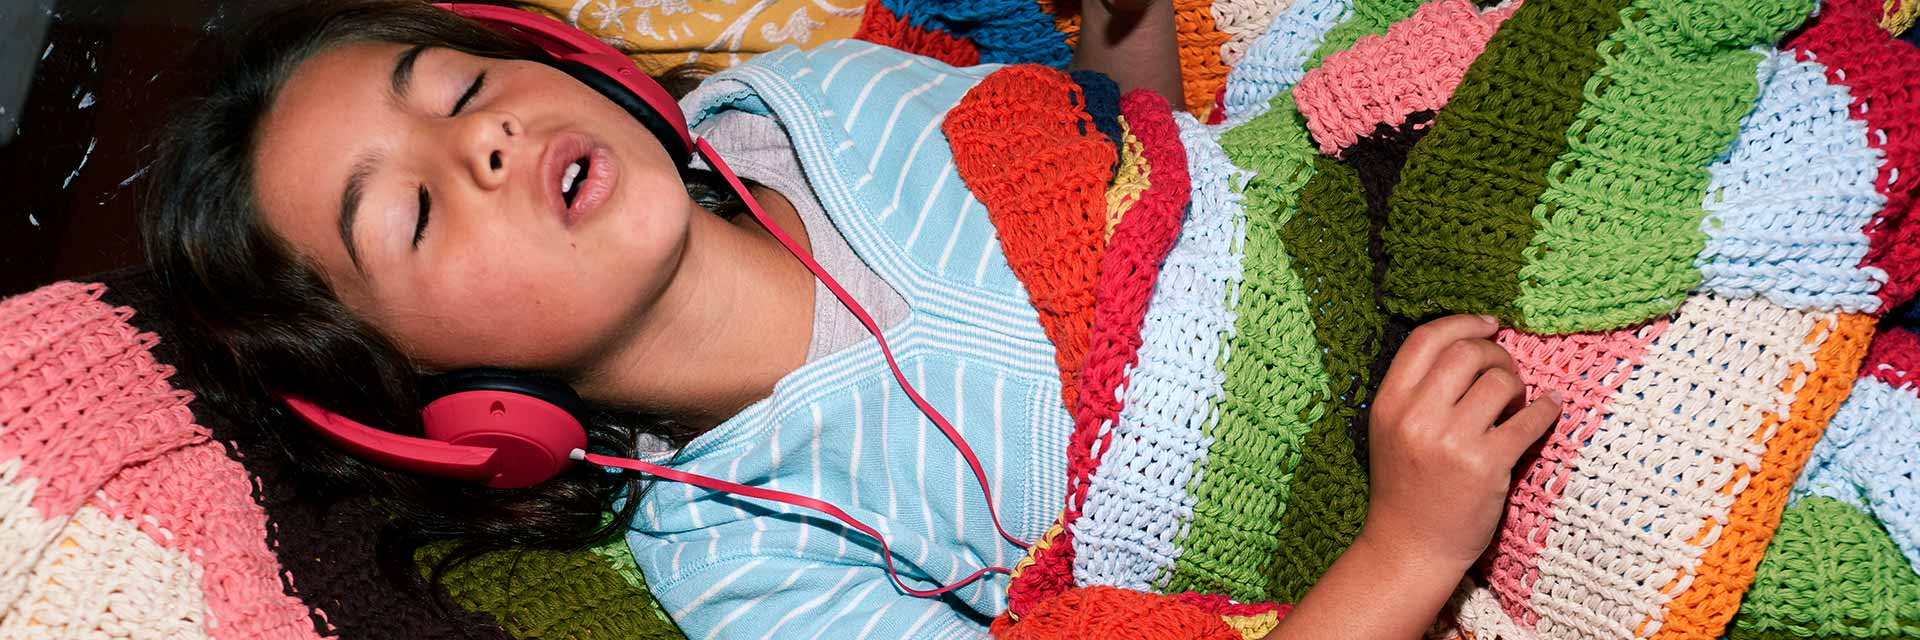 A young girl listens to music through headphones while snuggling with a blanket.